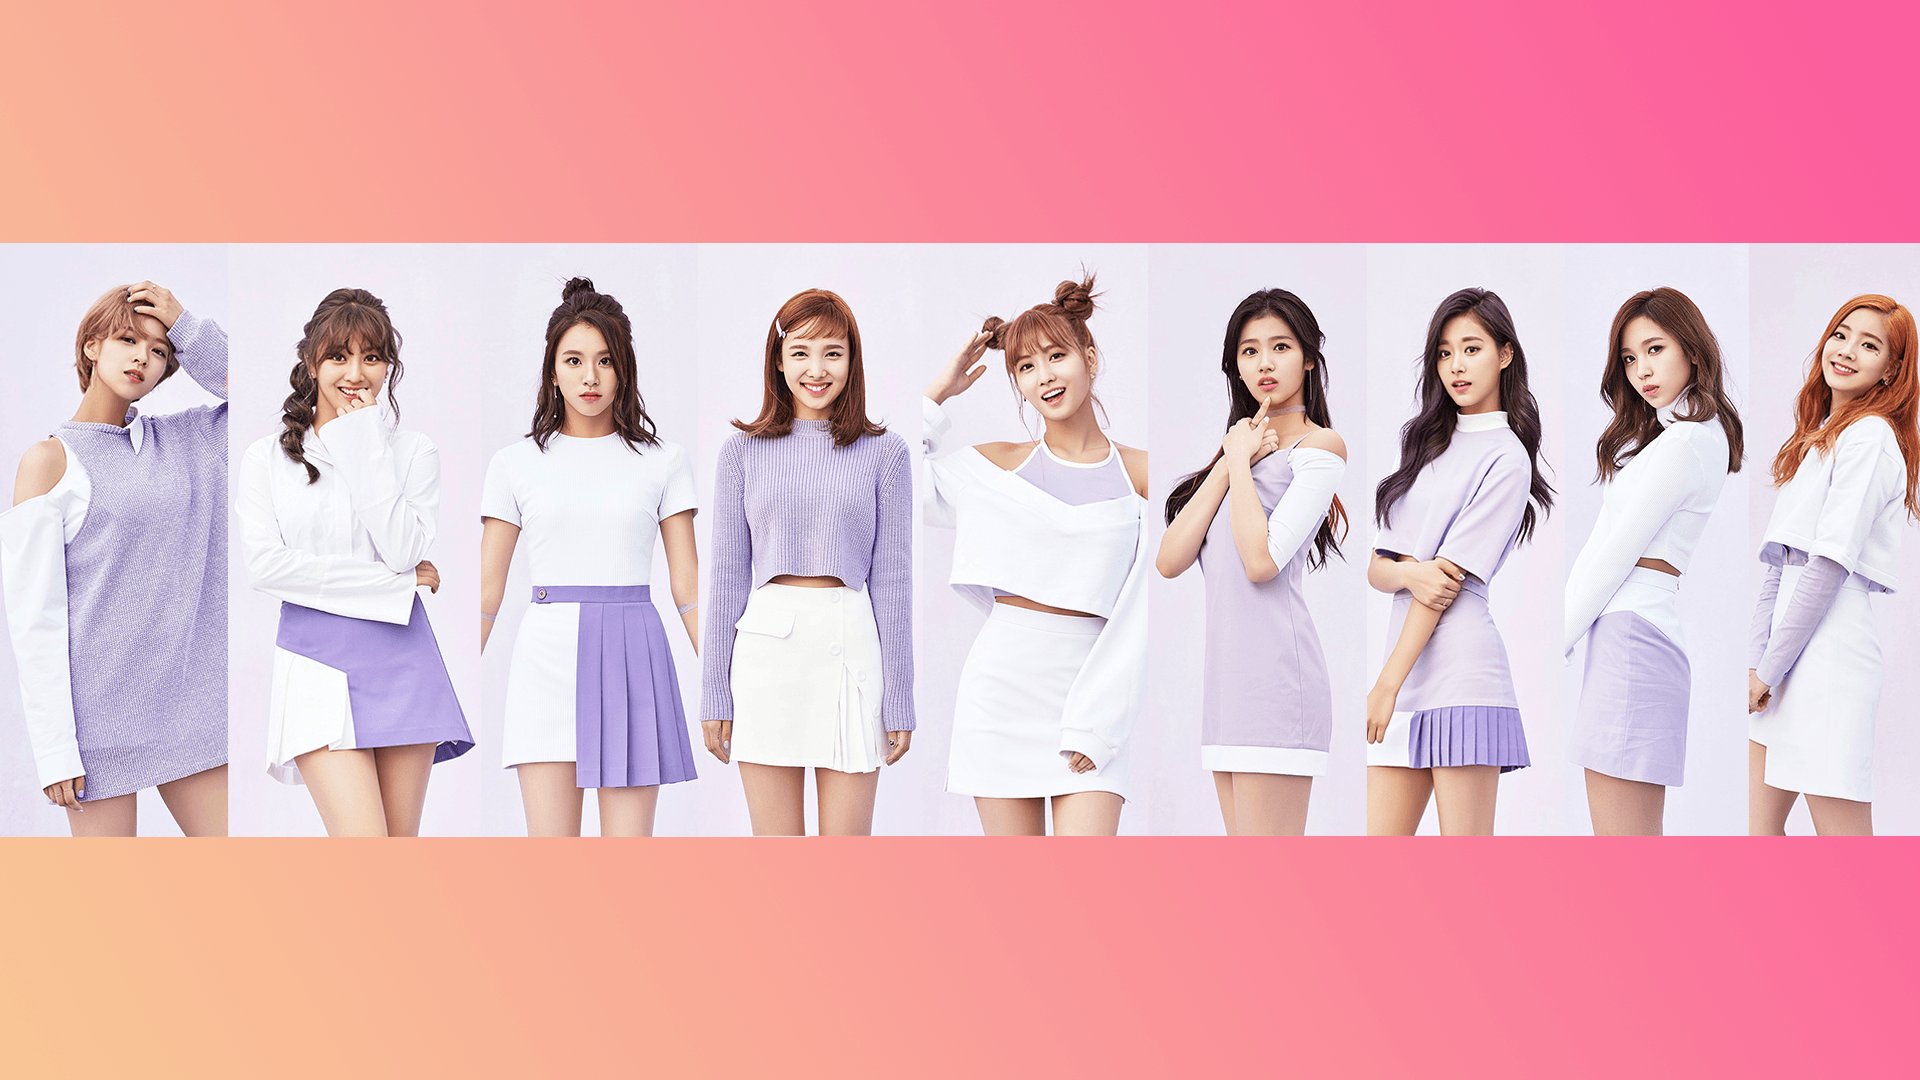 Twice Laptop Wallpapers Top Free Twice Laptop Backgrounds Wallpaperaccess